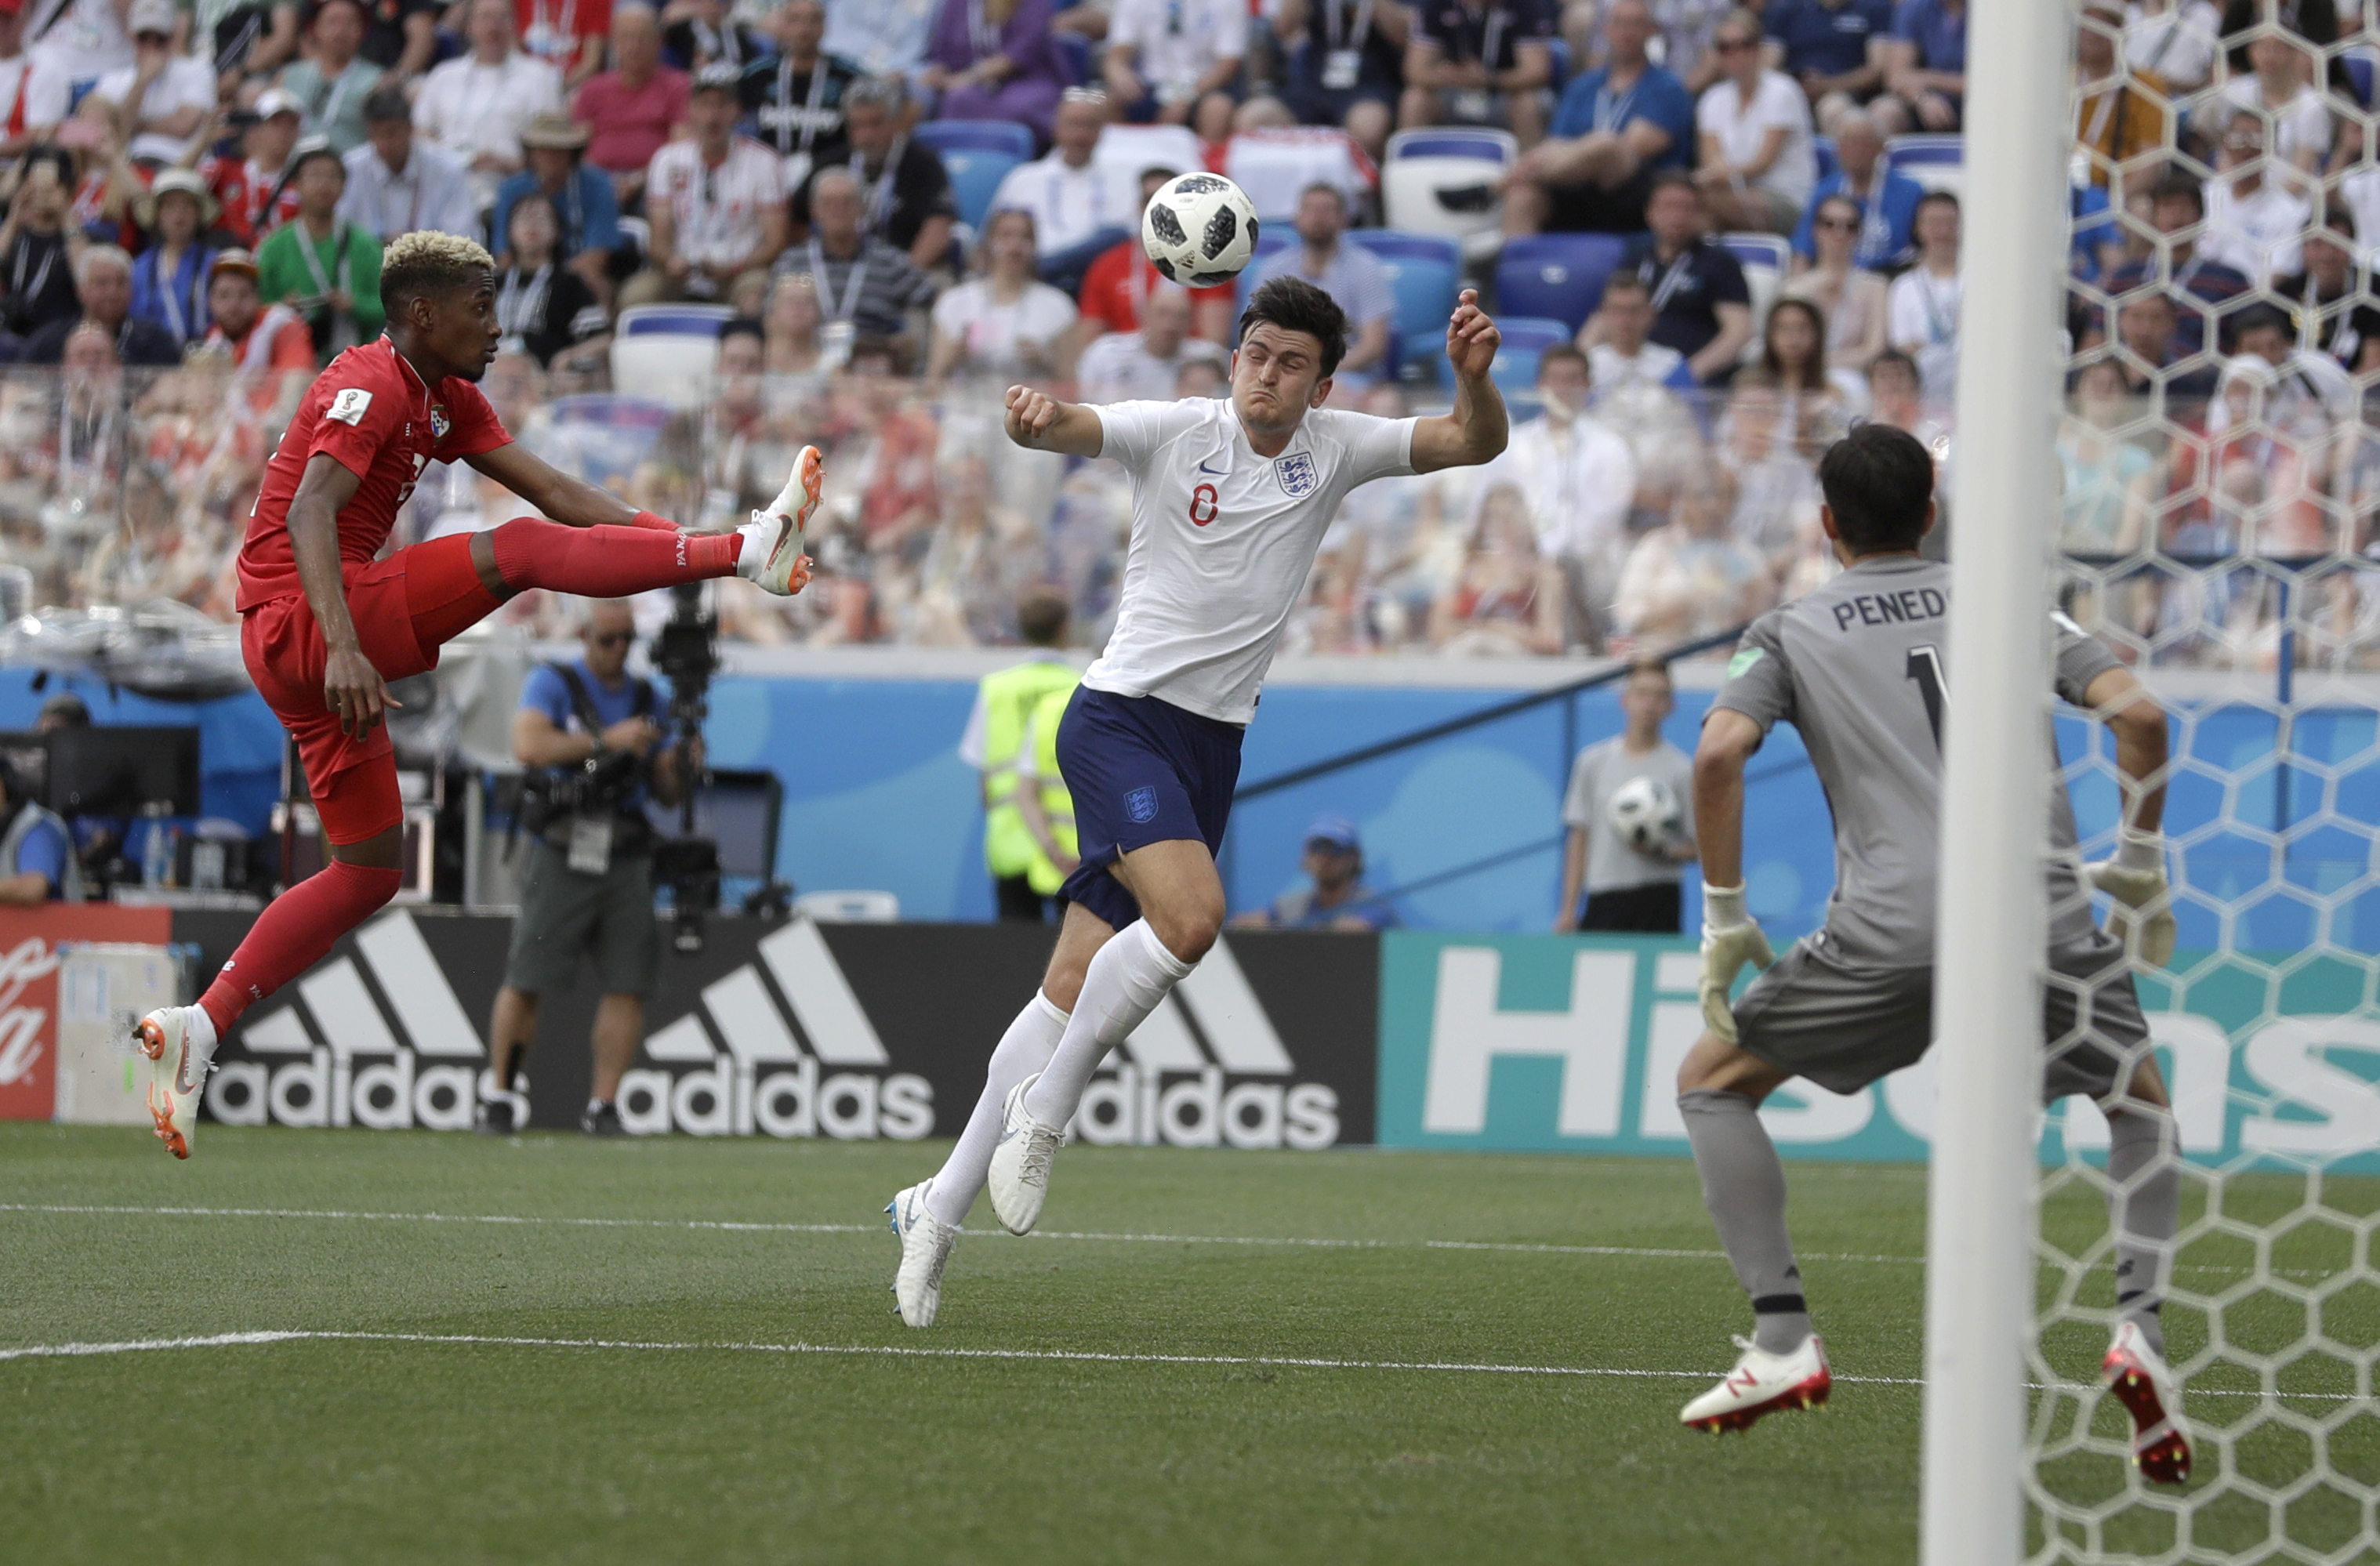 <div class='meta'><div class='origin-logo' data-origin='none'></div><span class='caption-text' data-credit='Matthias Schrader/AP Photo'>Panama's Michael Murillo, left, kicks the ball clear of England's Harry Maguire during the group G match at the Nizhny Novgorod Stadium on Sunday, June 24, 2018.</span></div>